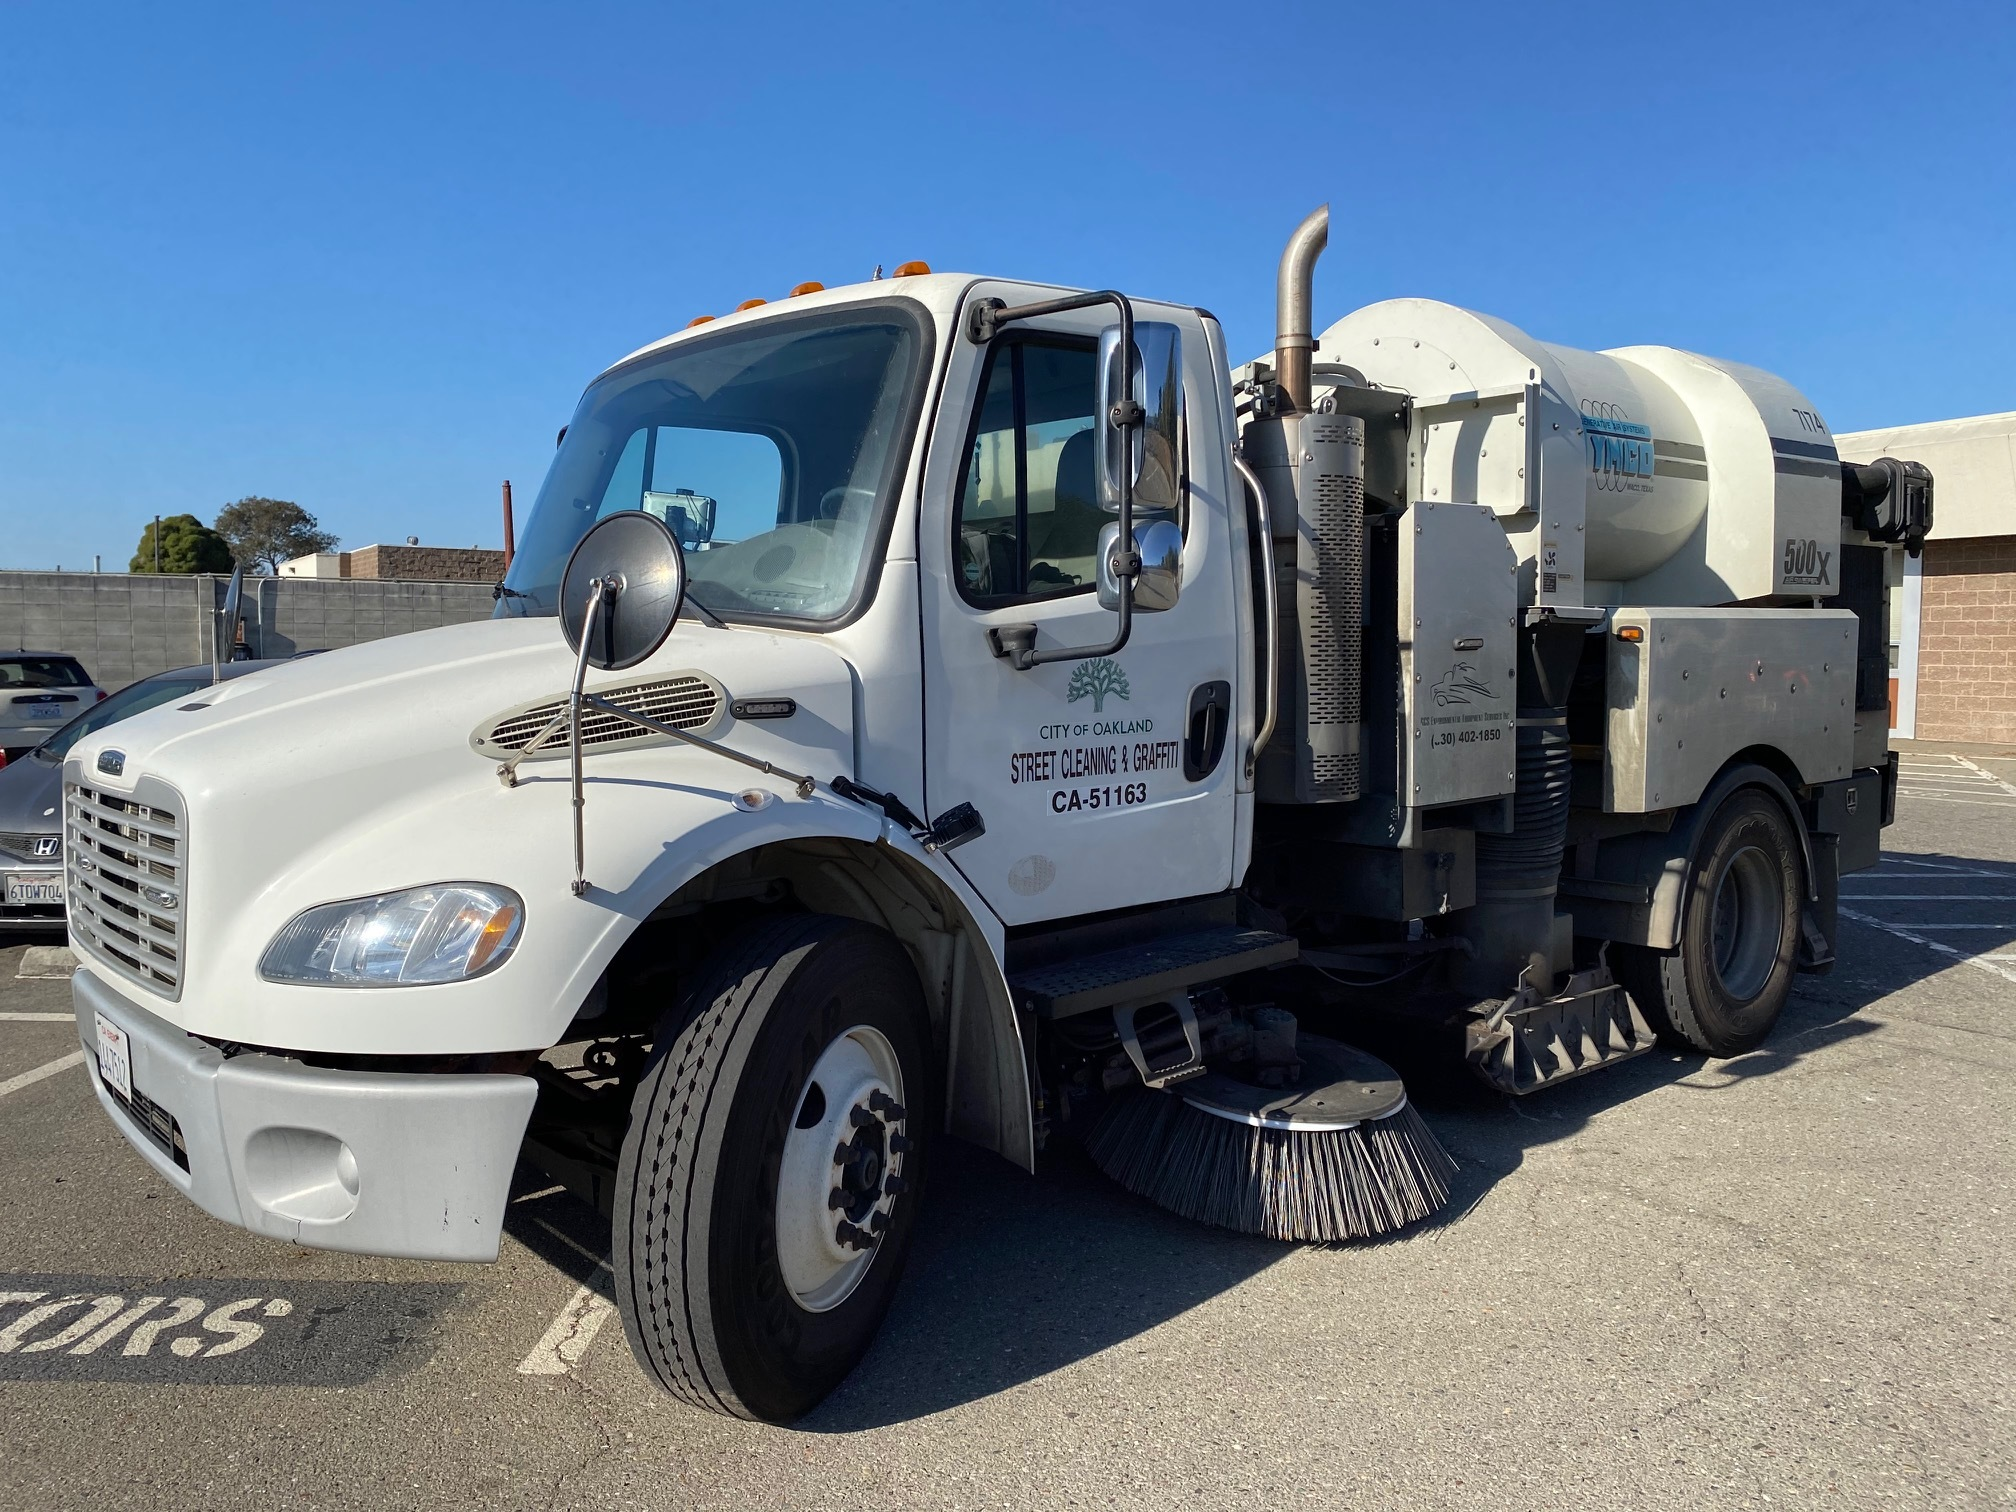 Photo of a City of Oakland Street Sweeper Vehicle